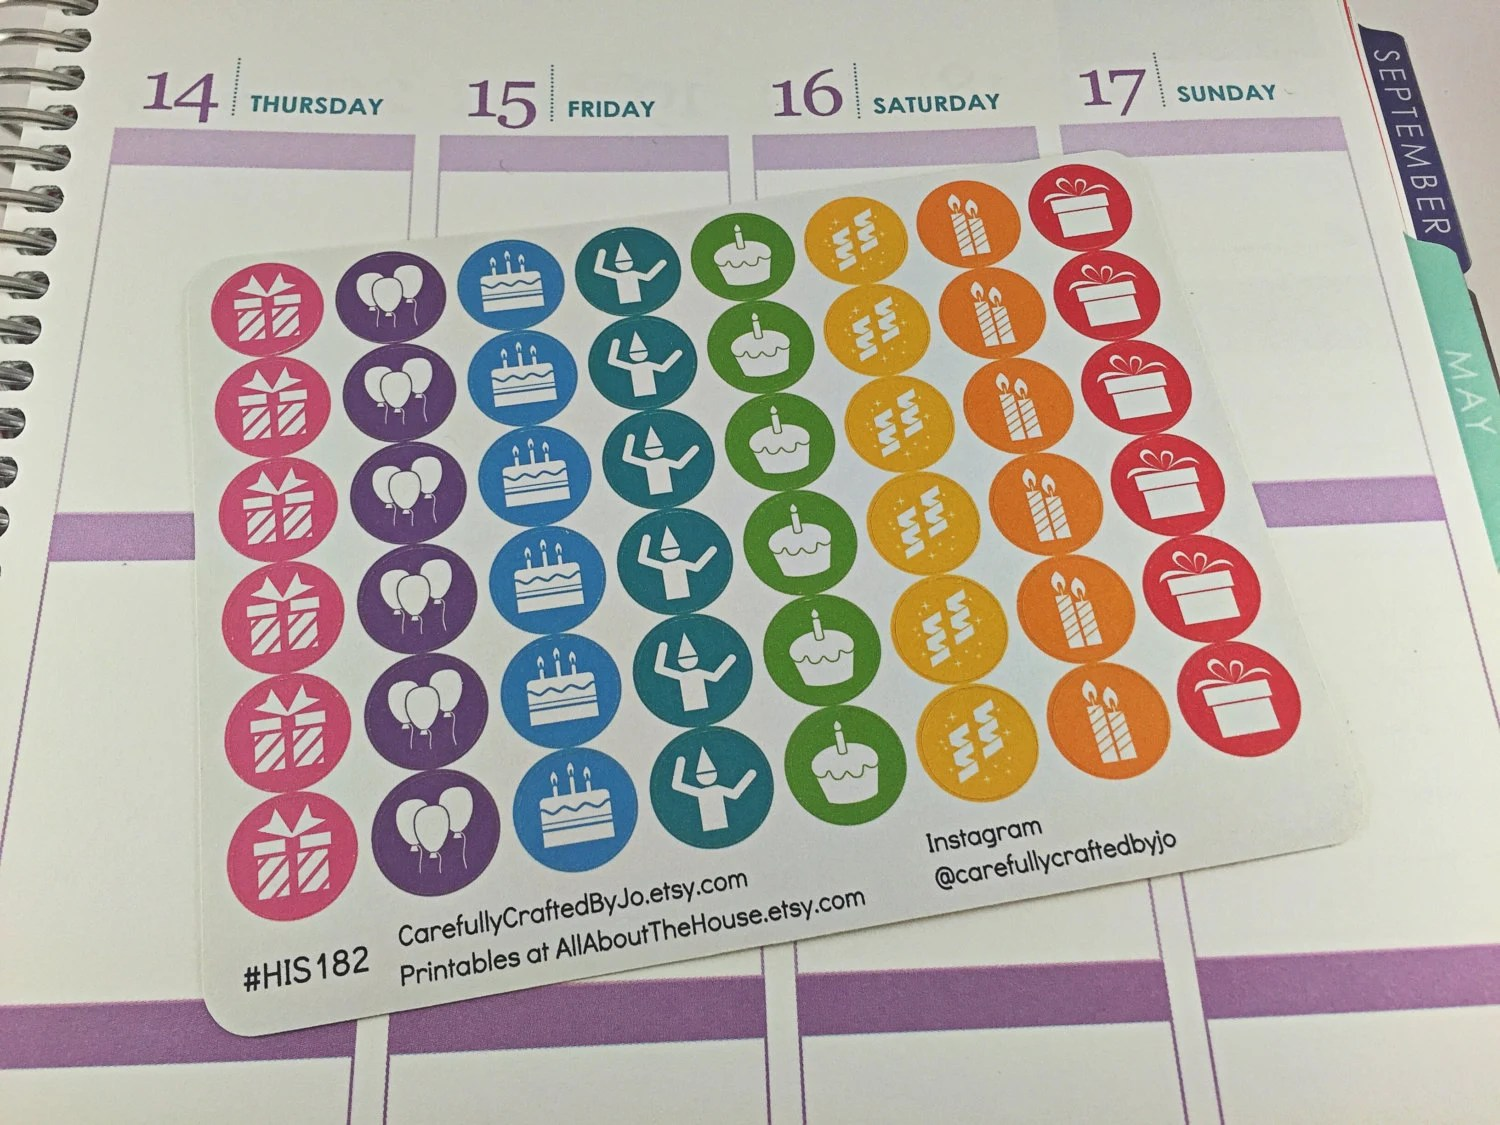 birthday planner stickers, rainbow, icon, functional, party, balloon, gift, dance, celebrate, anniversary, life event, candle, engagement, wedding